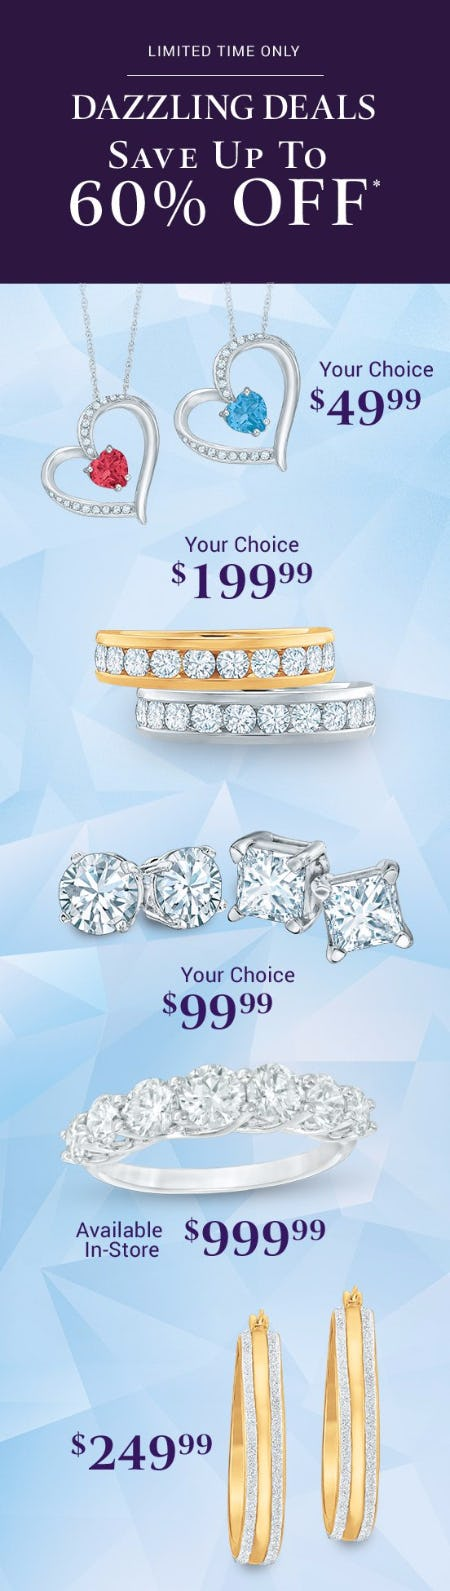 Dazzling Deals up to 60% Off